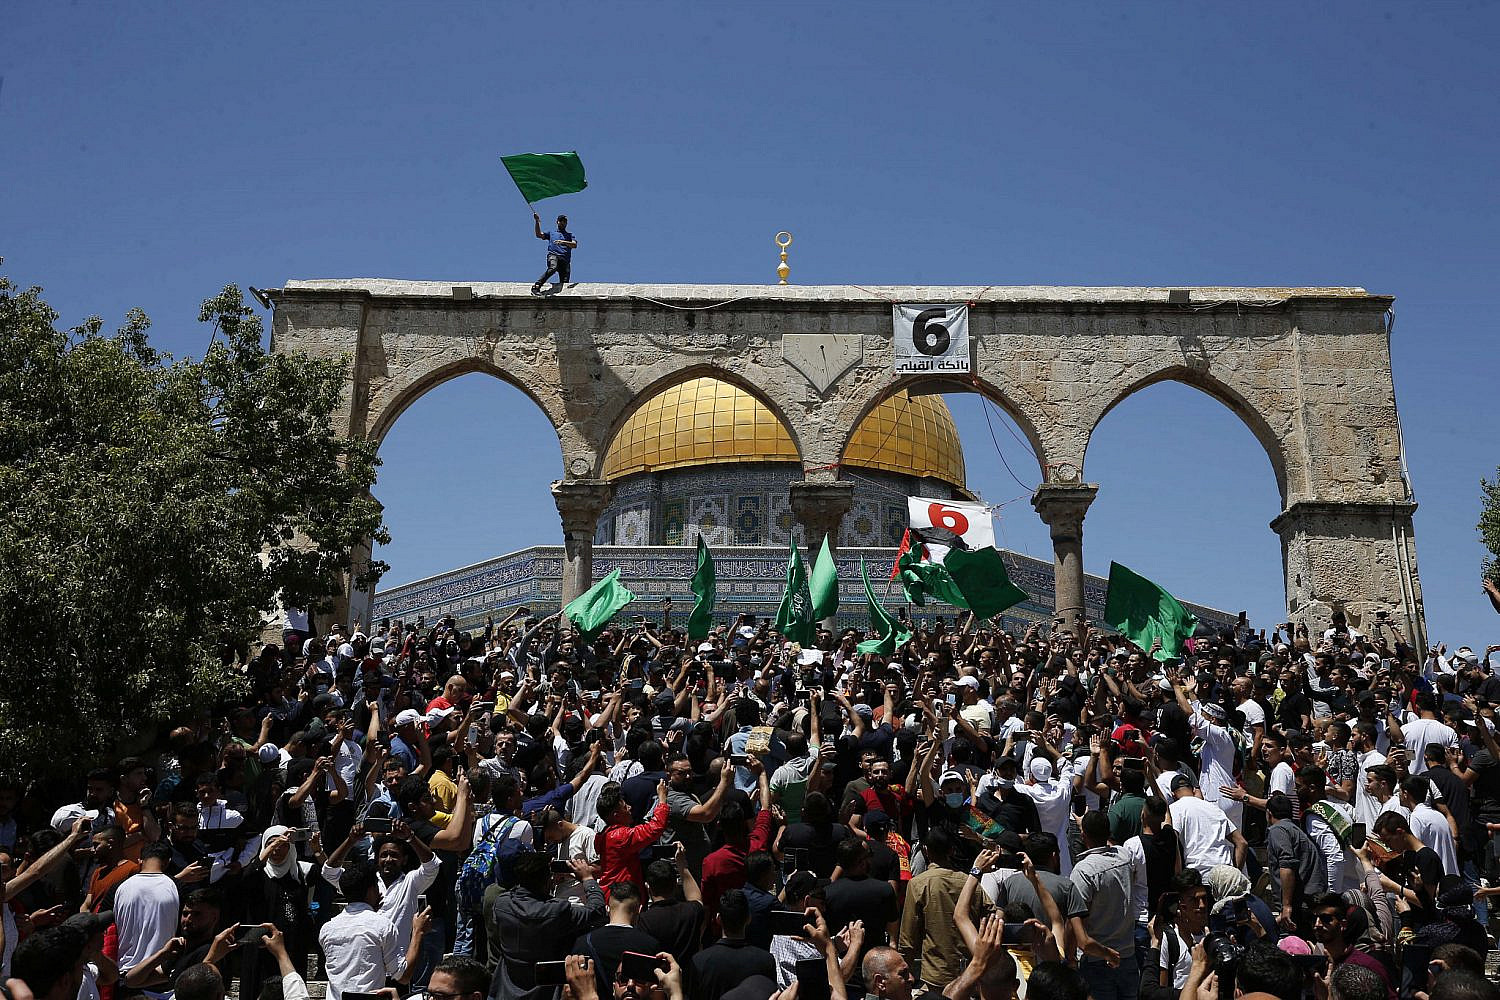 Palestinians gather in front of the Dome of the Rock after performing the last Friday prayer of Ramadan to protest over the eviction of several Palestinian families from homes in the East Jerusalem neighborhood of Sheikh Jarrah, Jerusalem, May 7, 2021. (Jamal Awad/Flash90)